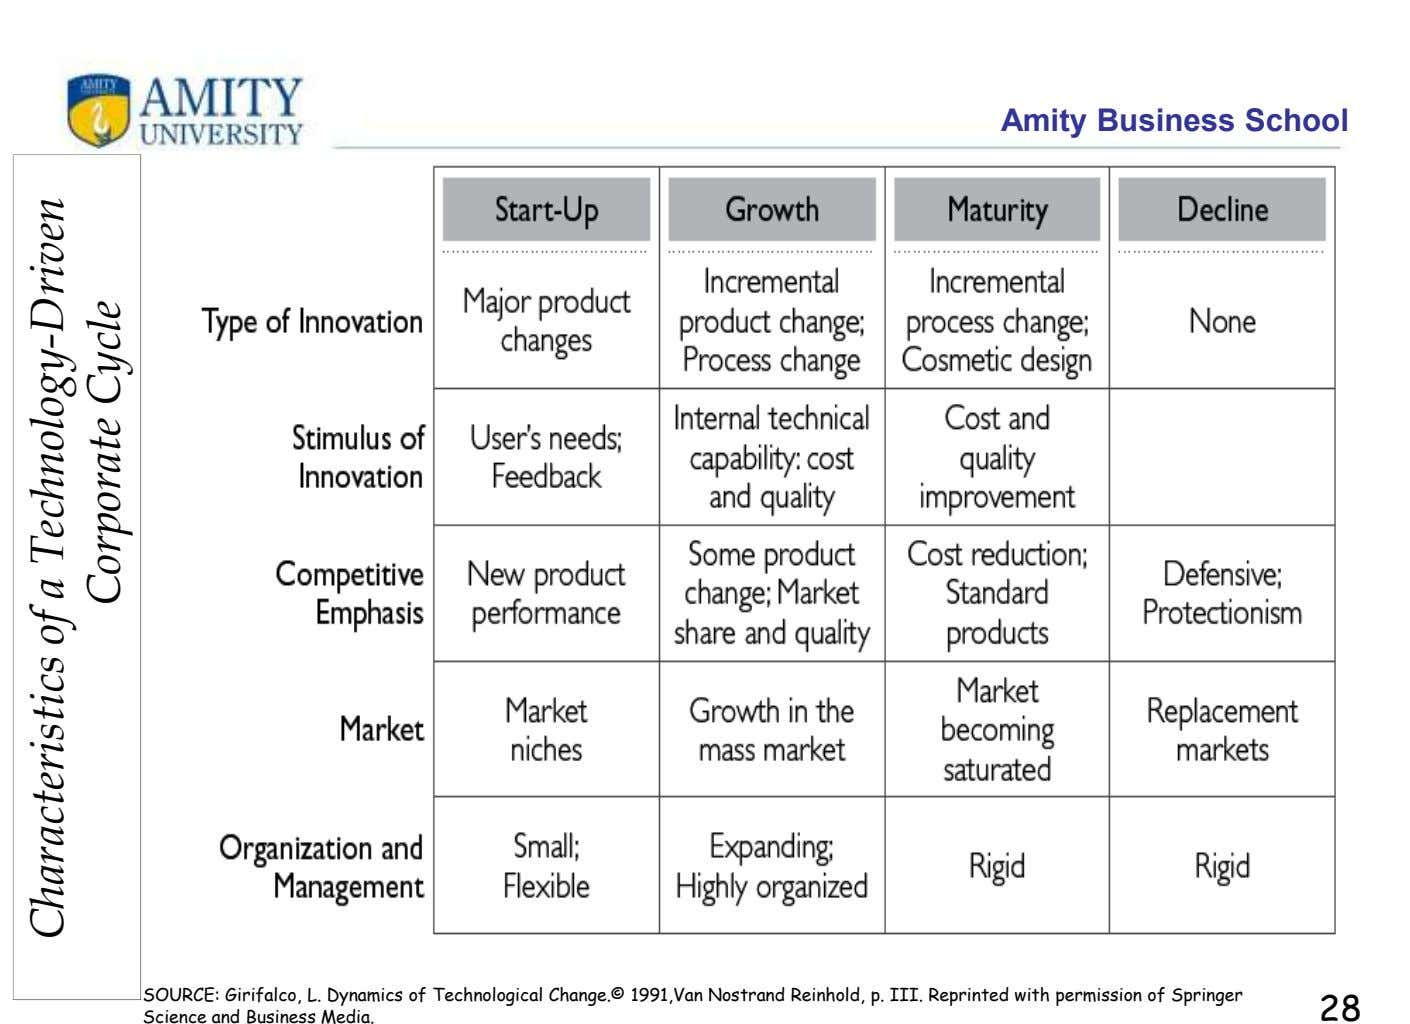 Amity Business School SOURCE: Girifalco, L. Dynamics of Technological Change.© 1991,Van Nostrand Reinhold, p. III. Reprinted